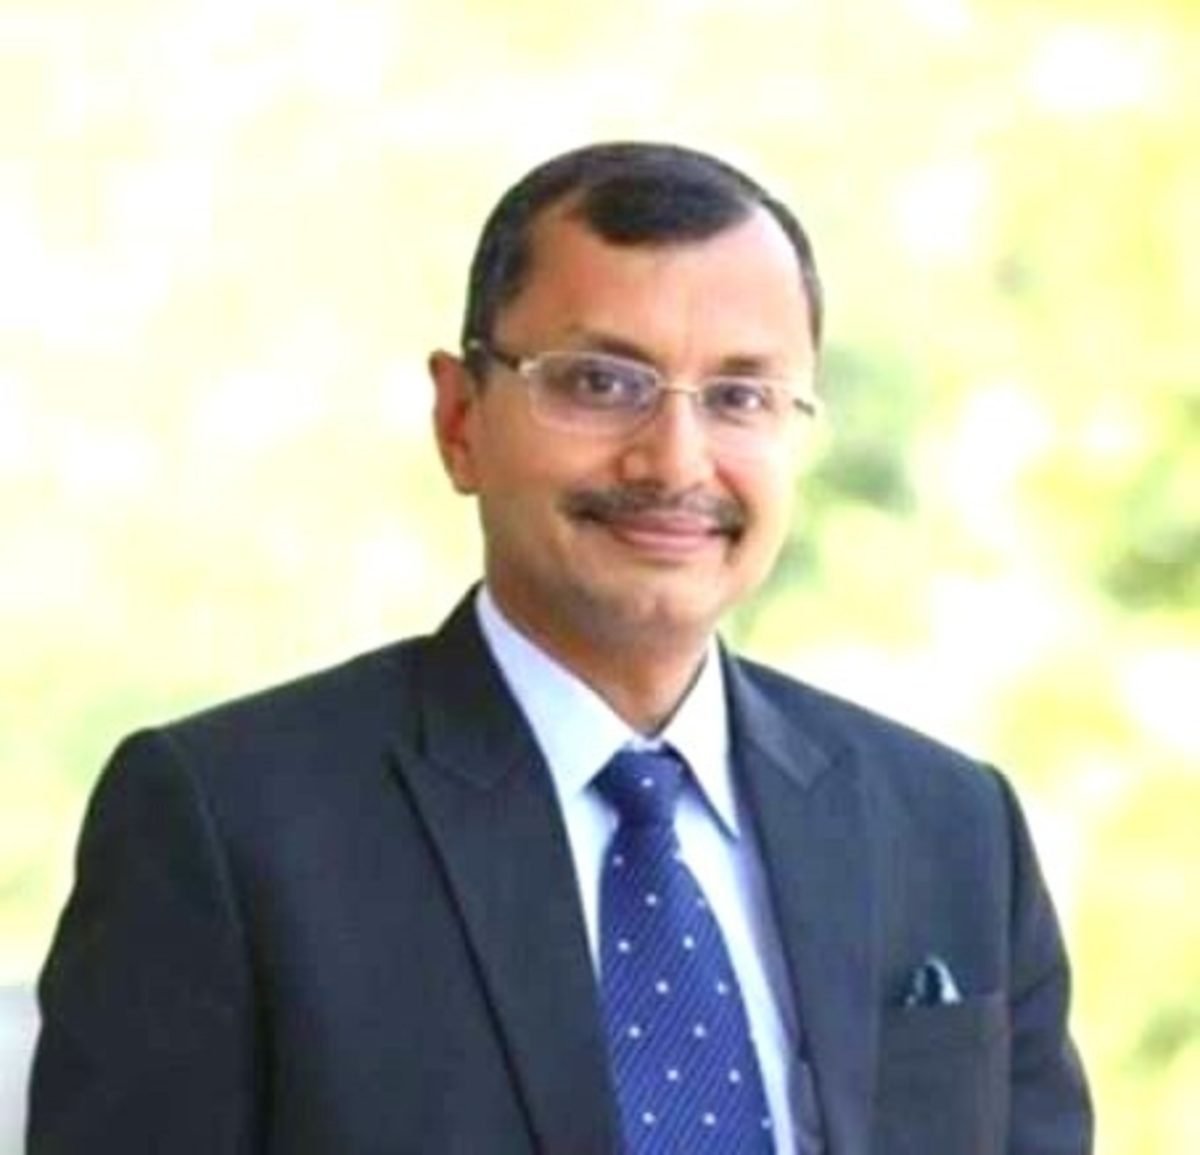 Mr. Tarun Garg, Director (Sales, Marketing & Service), Hyundai Motor India Limited